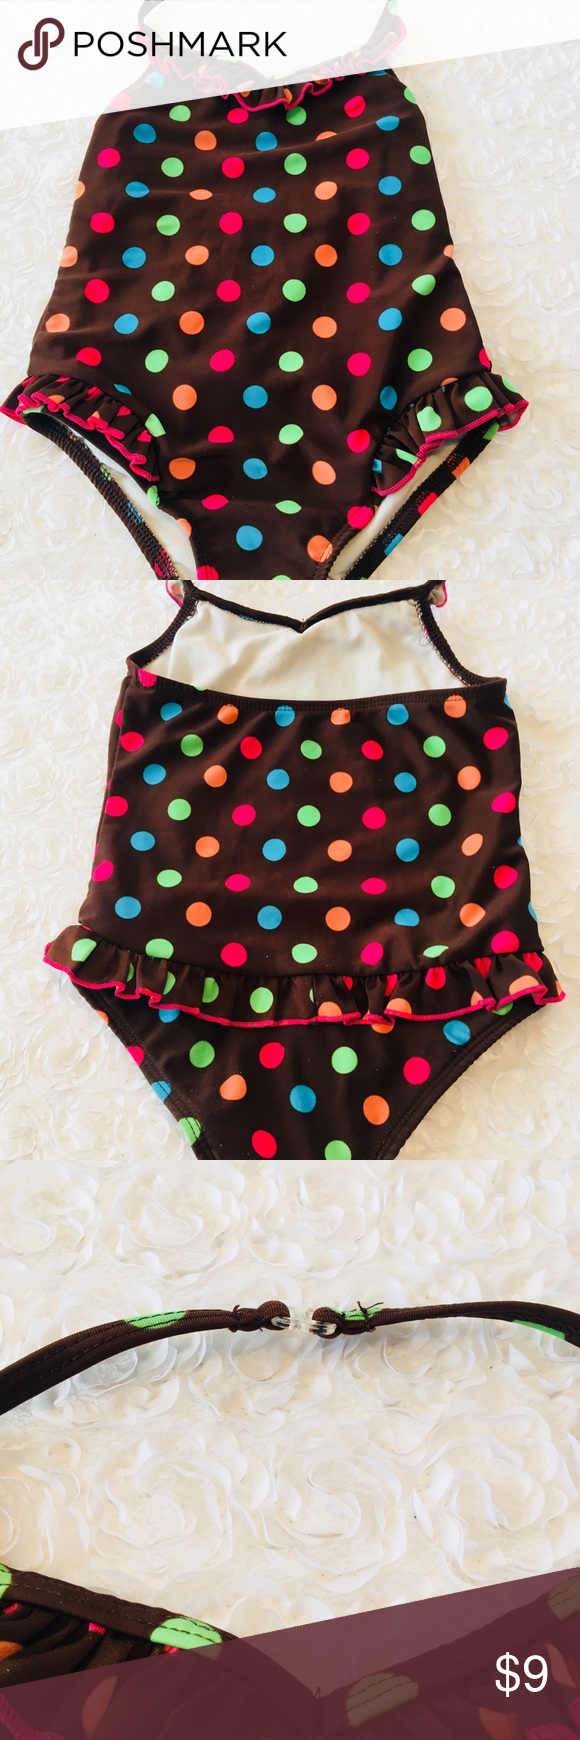 3b82763209c67 Little girls swimsuit Brown w/polka dots swimsuit excellent condition Circo  Swim One Piece